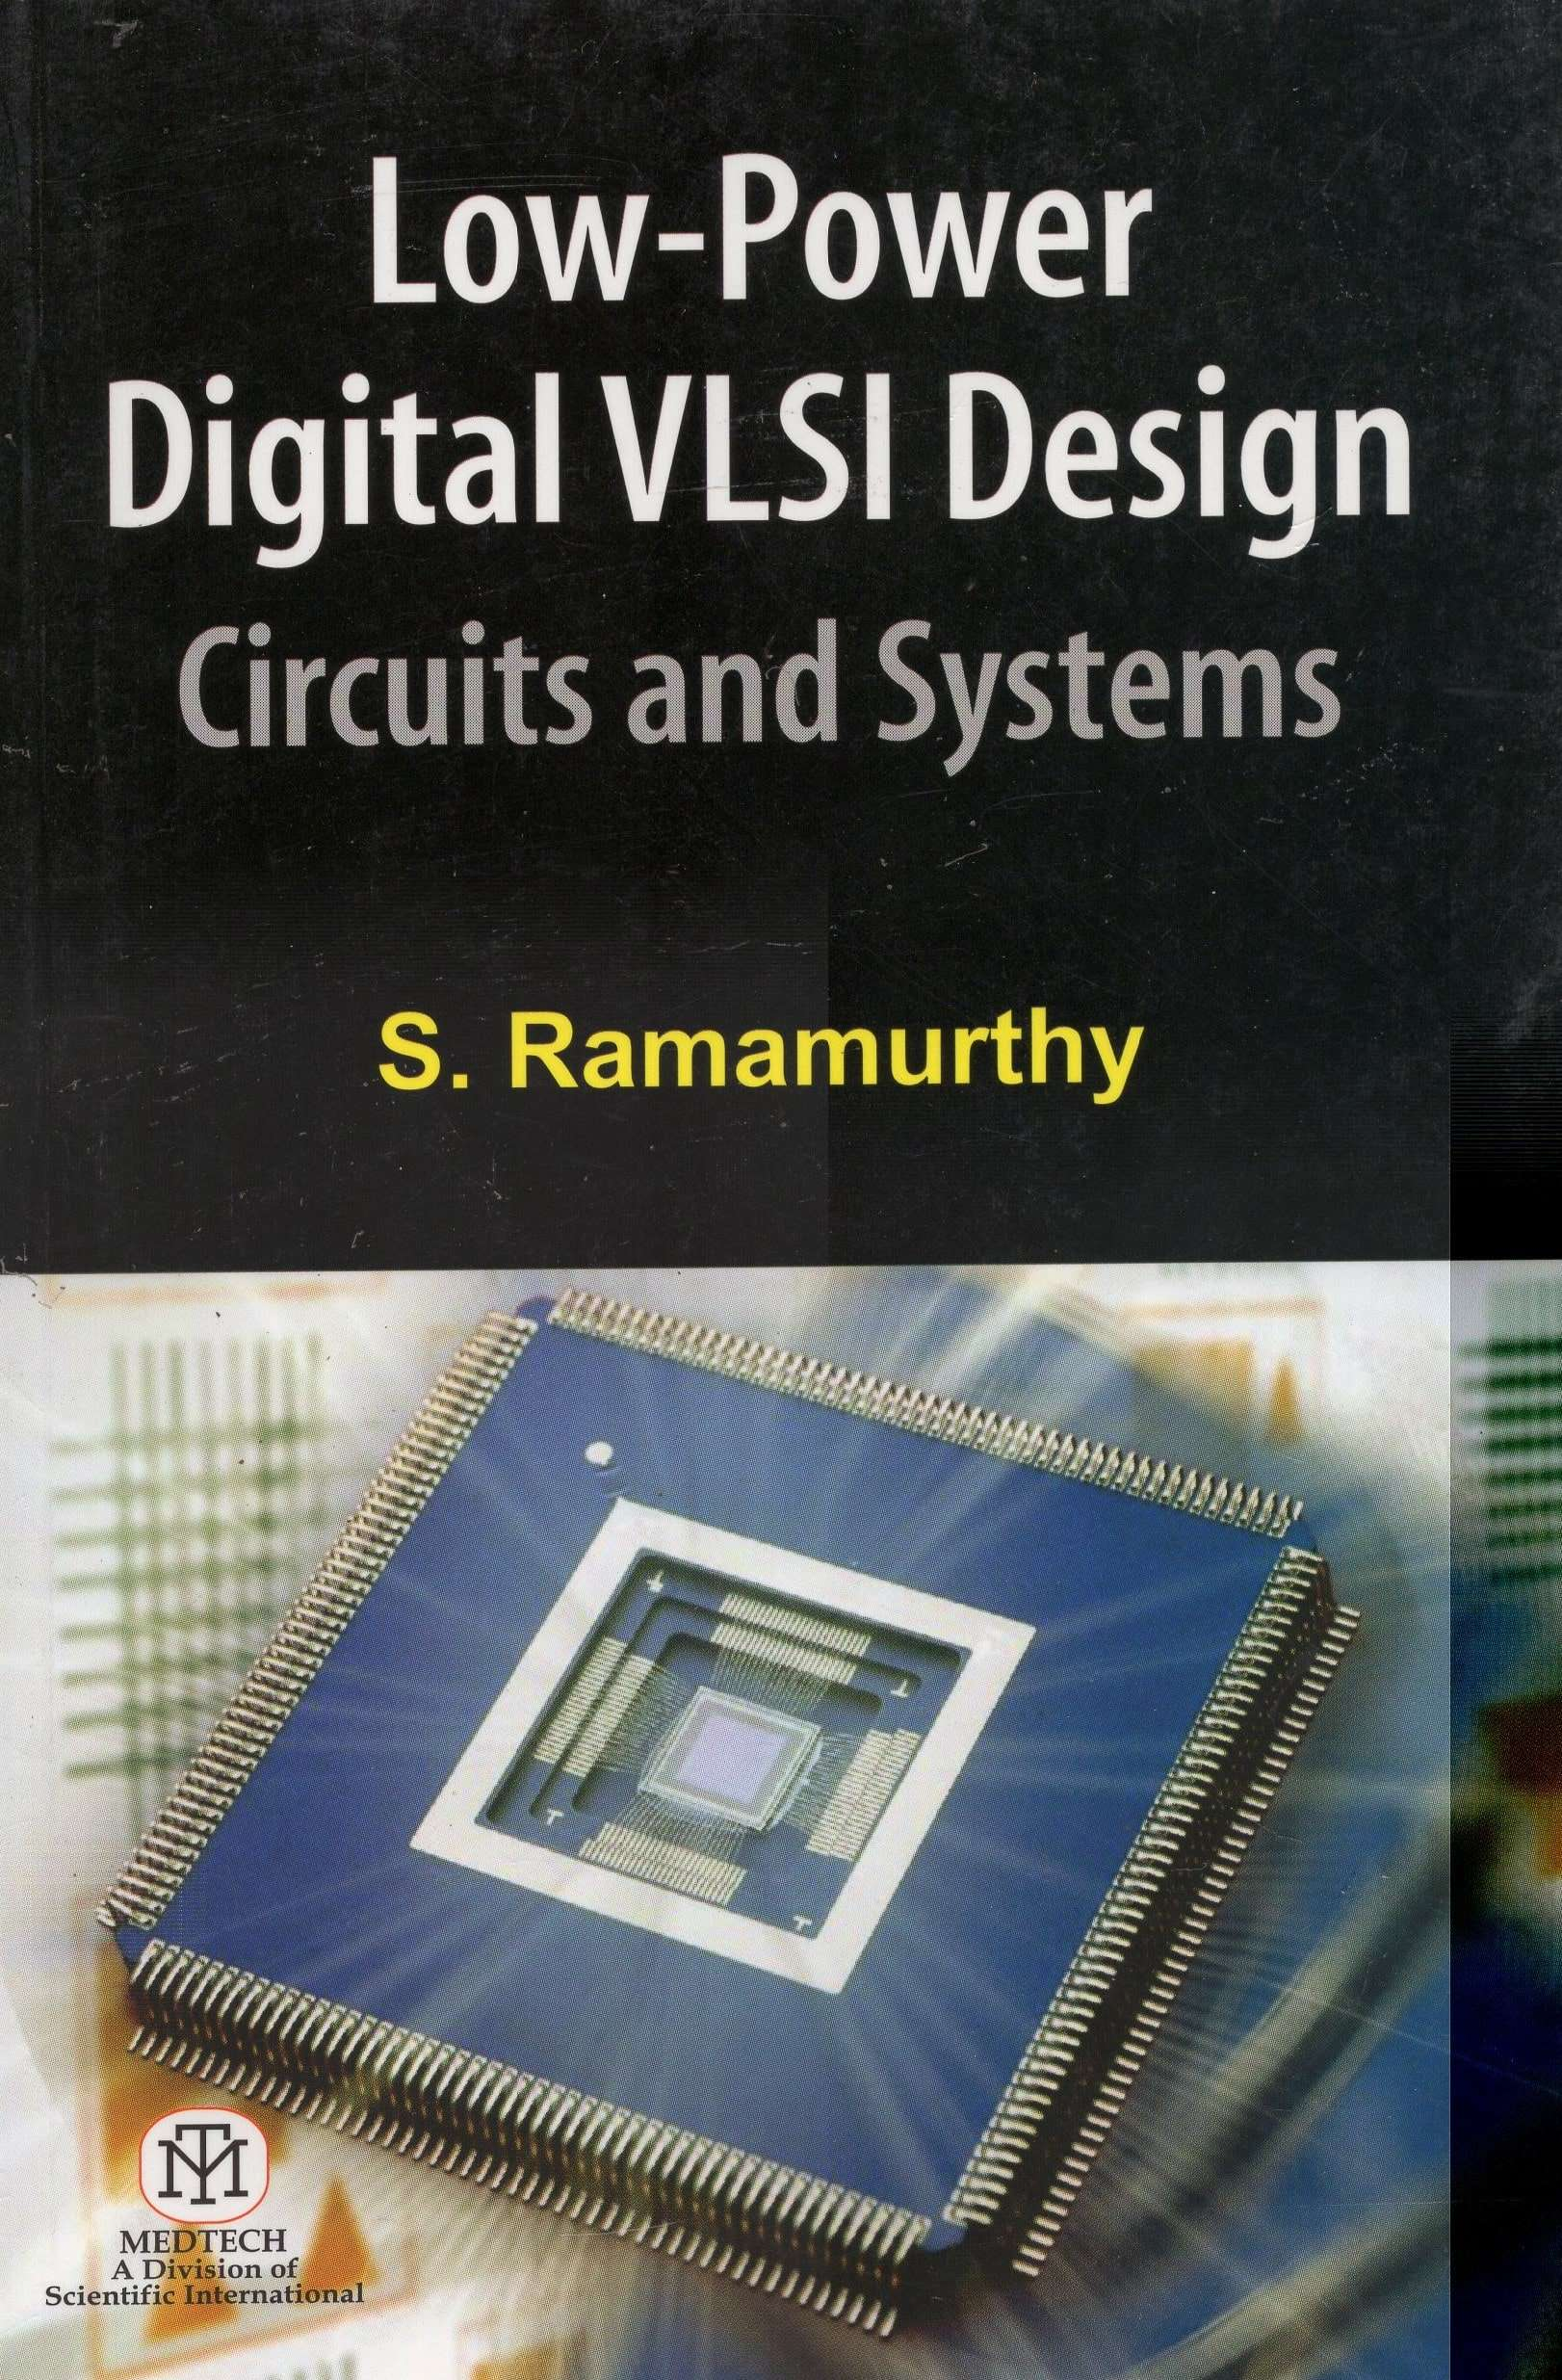 LOW-POWER DIGITAL VLSI DESIGN CIRCUITS AND SYSTEMS